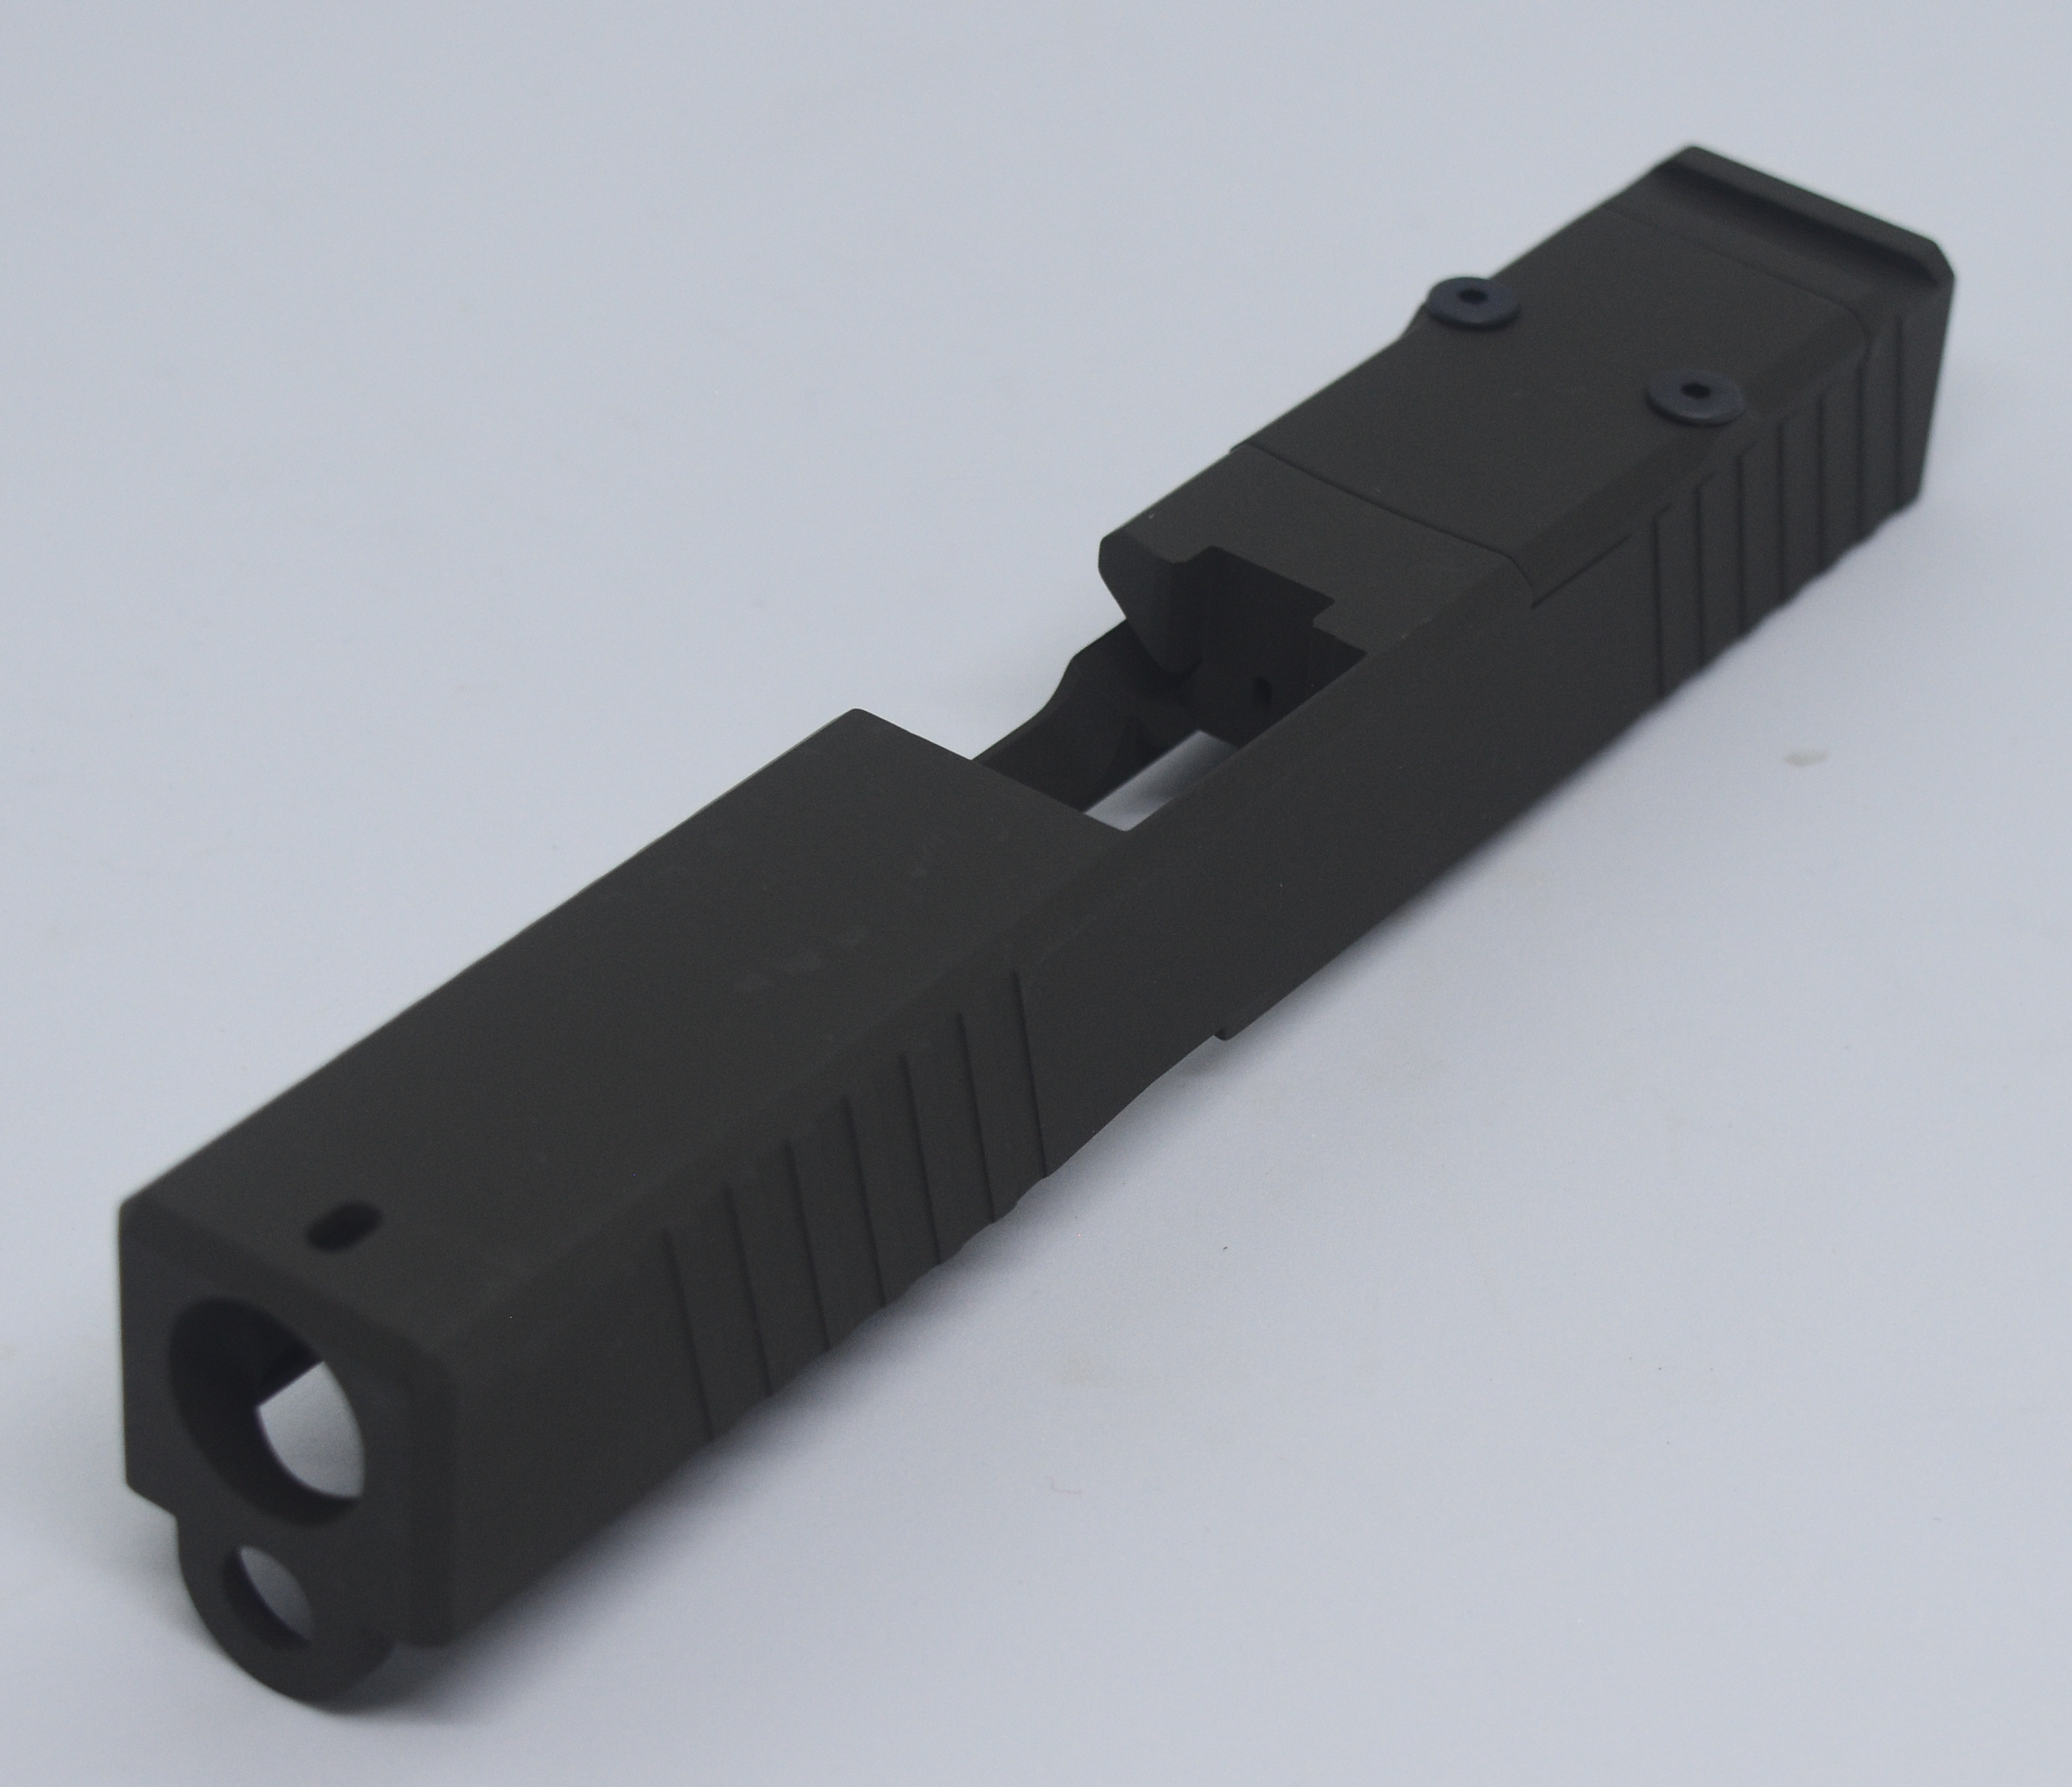 Glock 19 ODG Slide with cover plate